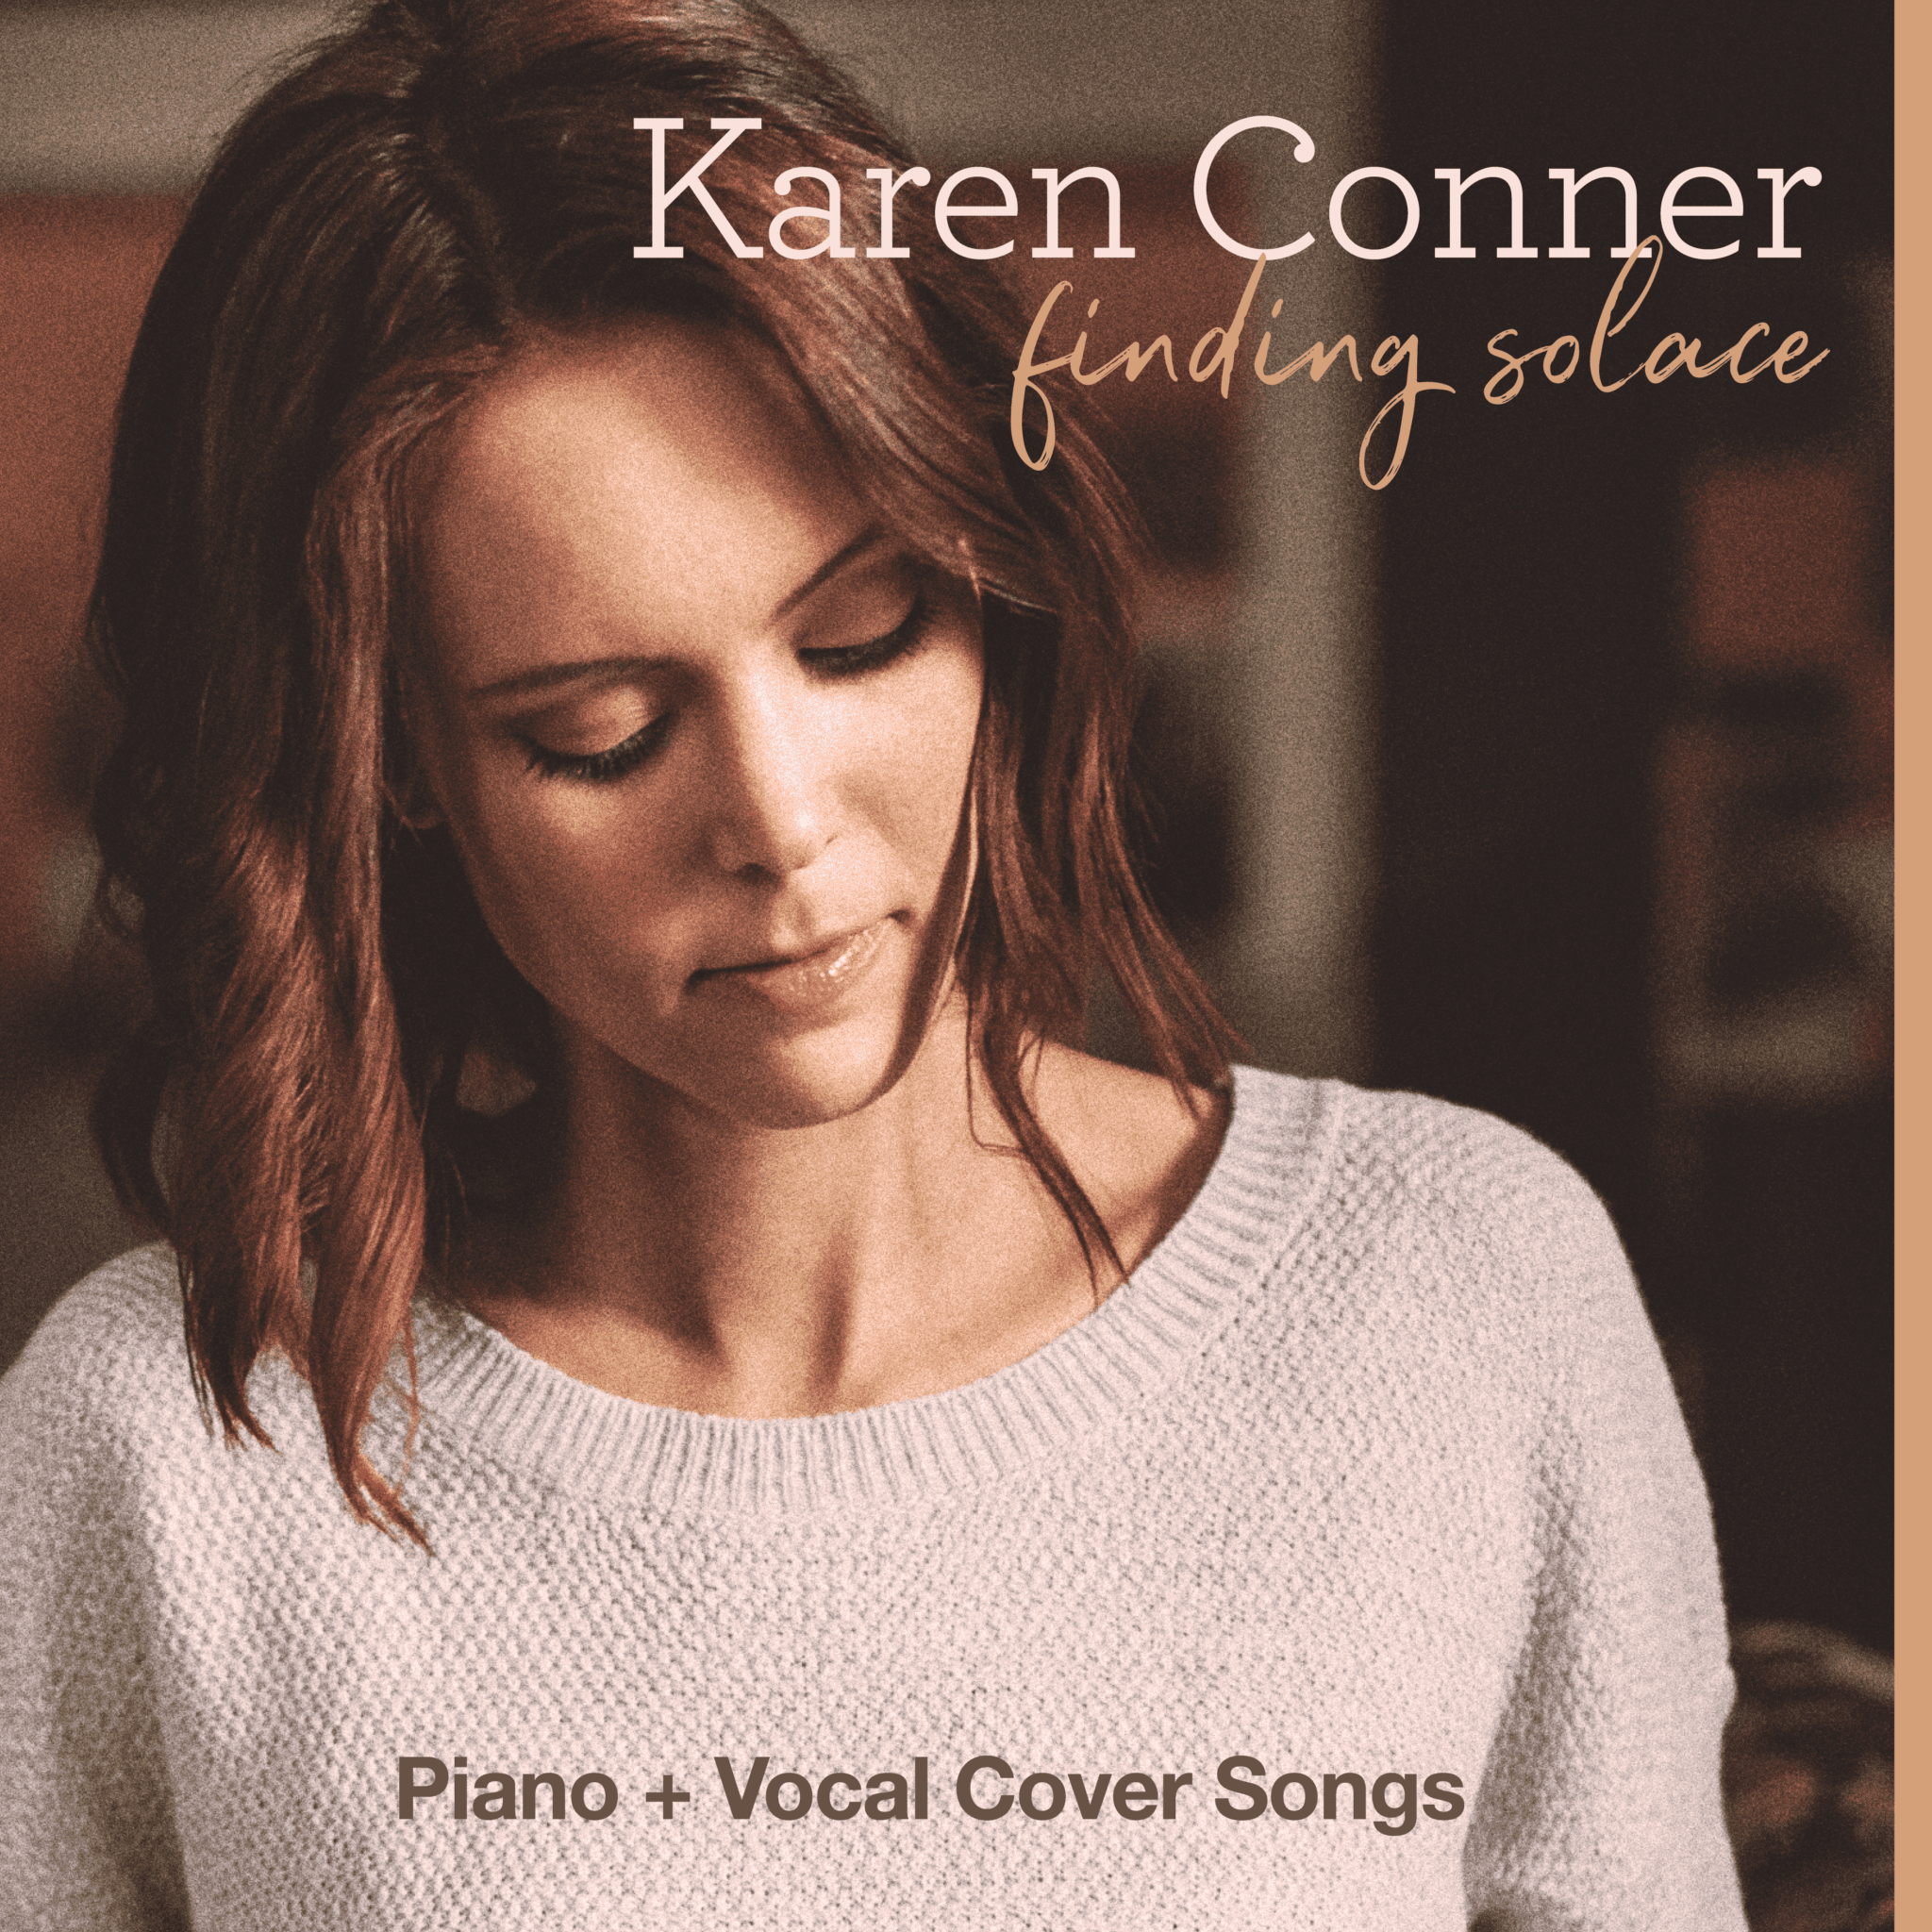 KarenConner-FindingSolace-Cover-iTunesSpotify-FINAL